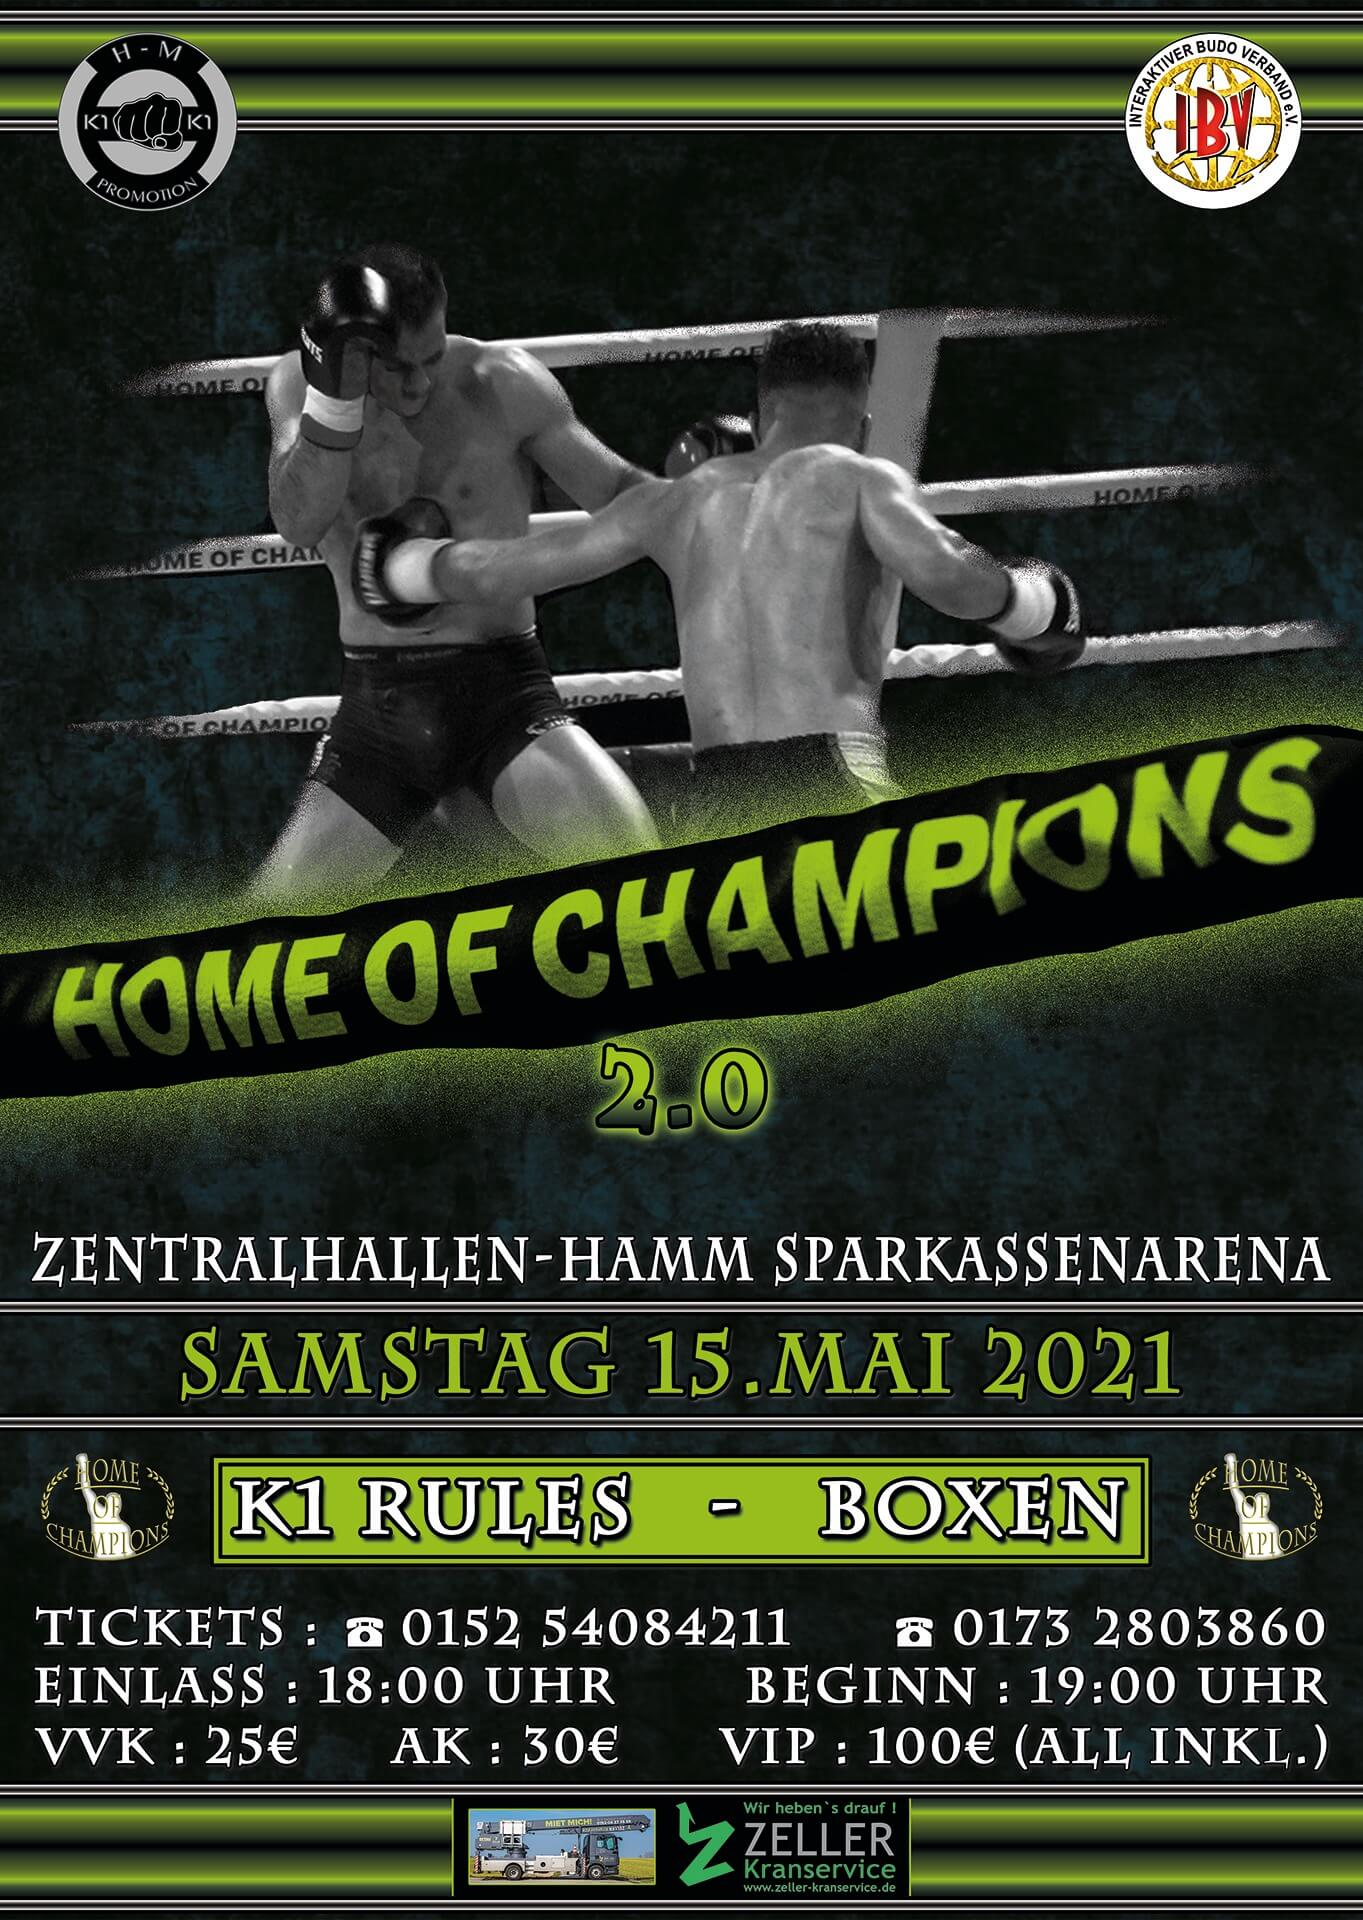 Home of Champions 2.0 Samstag 15 Mai 2021